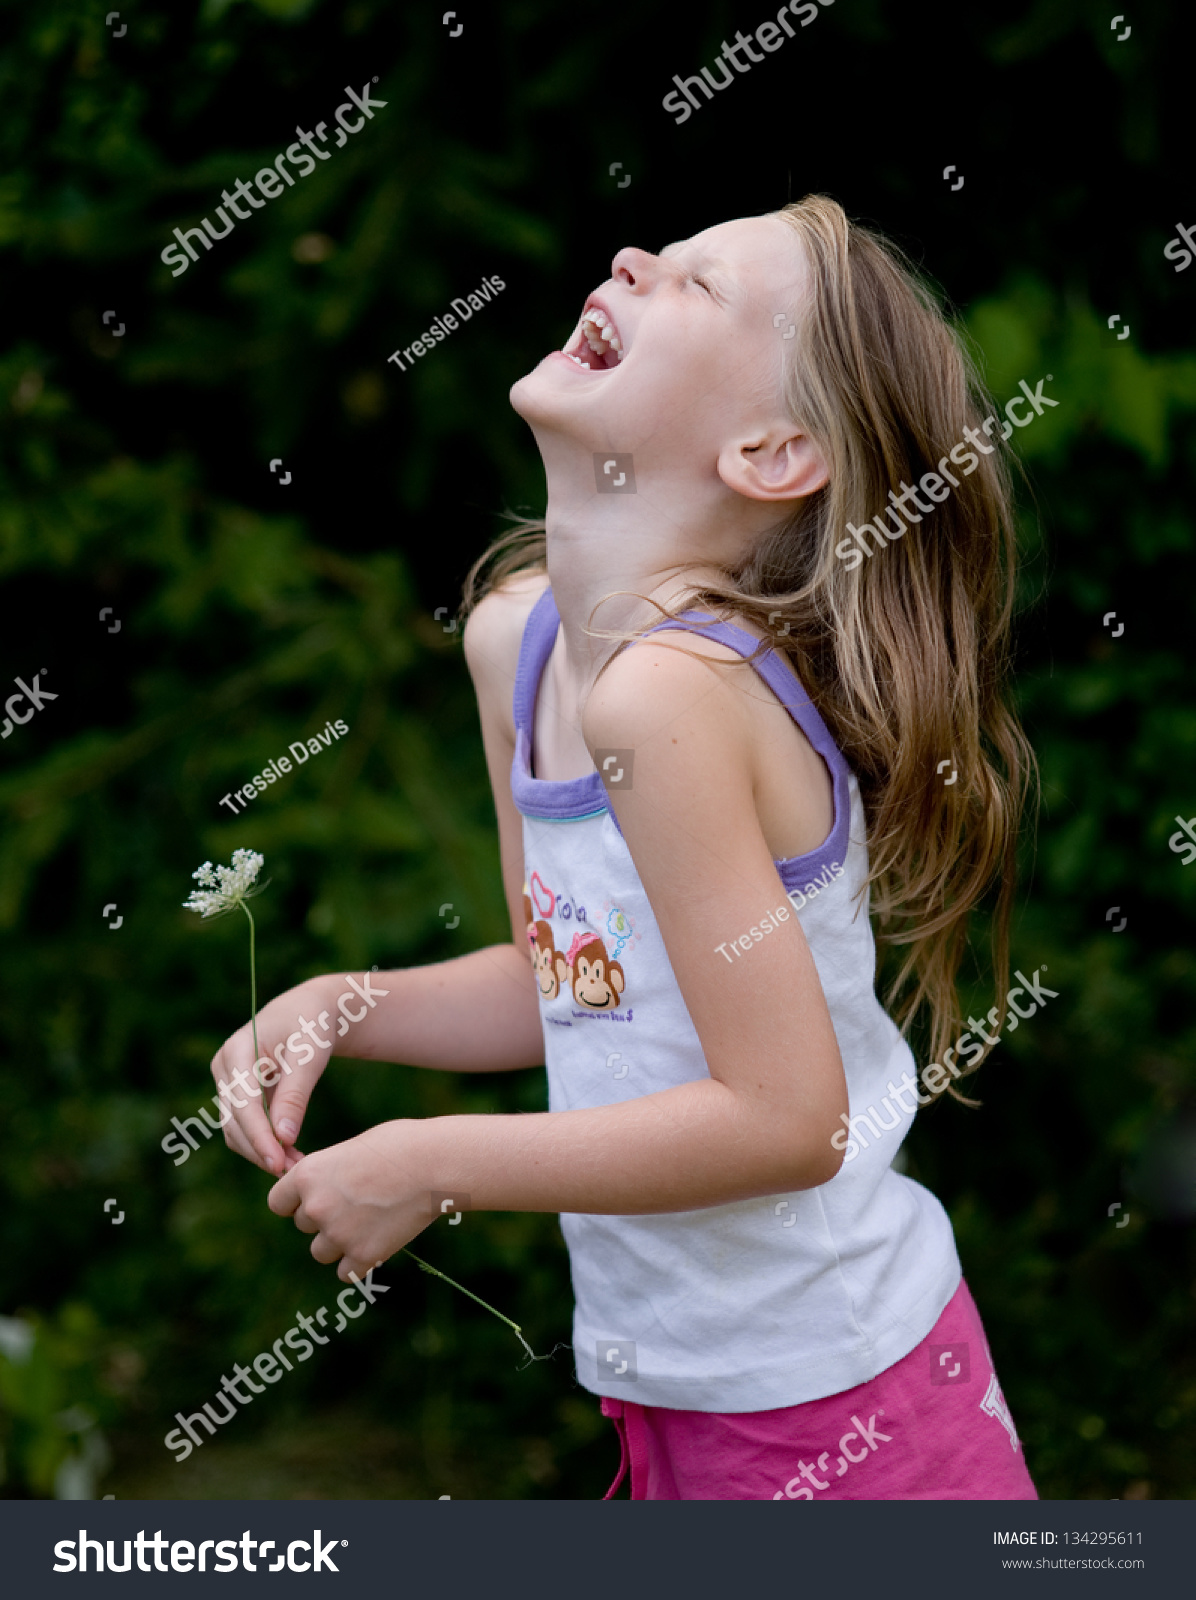 320e2b8e9098a Little girl wearing shorts and tank top holding queen annes lace laughing  joyfully